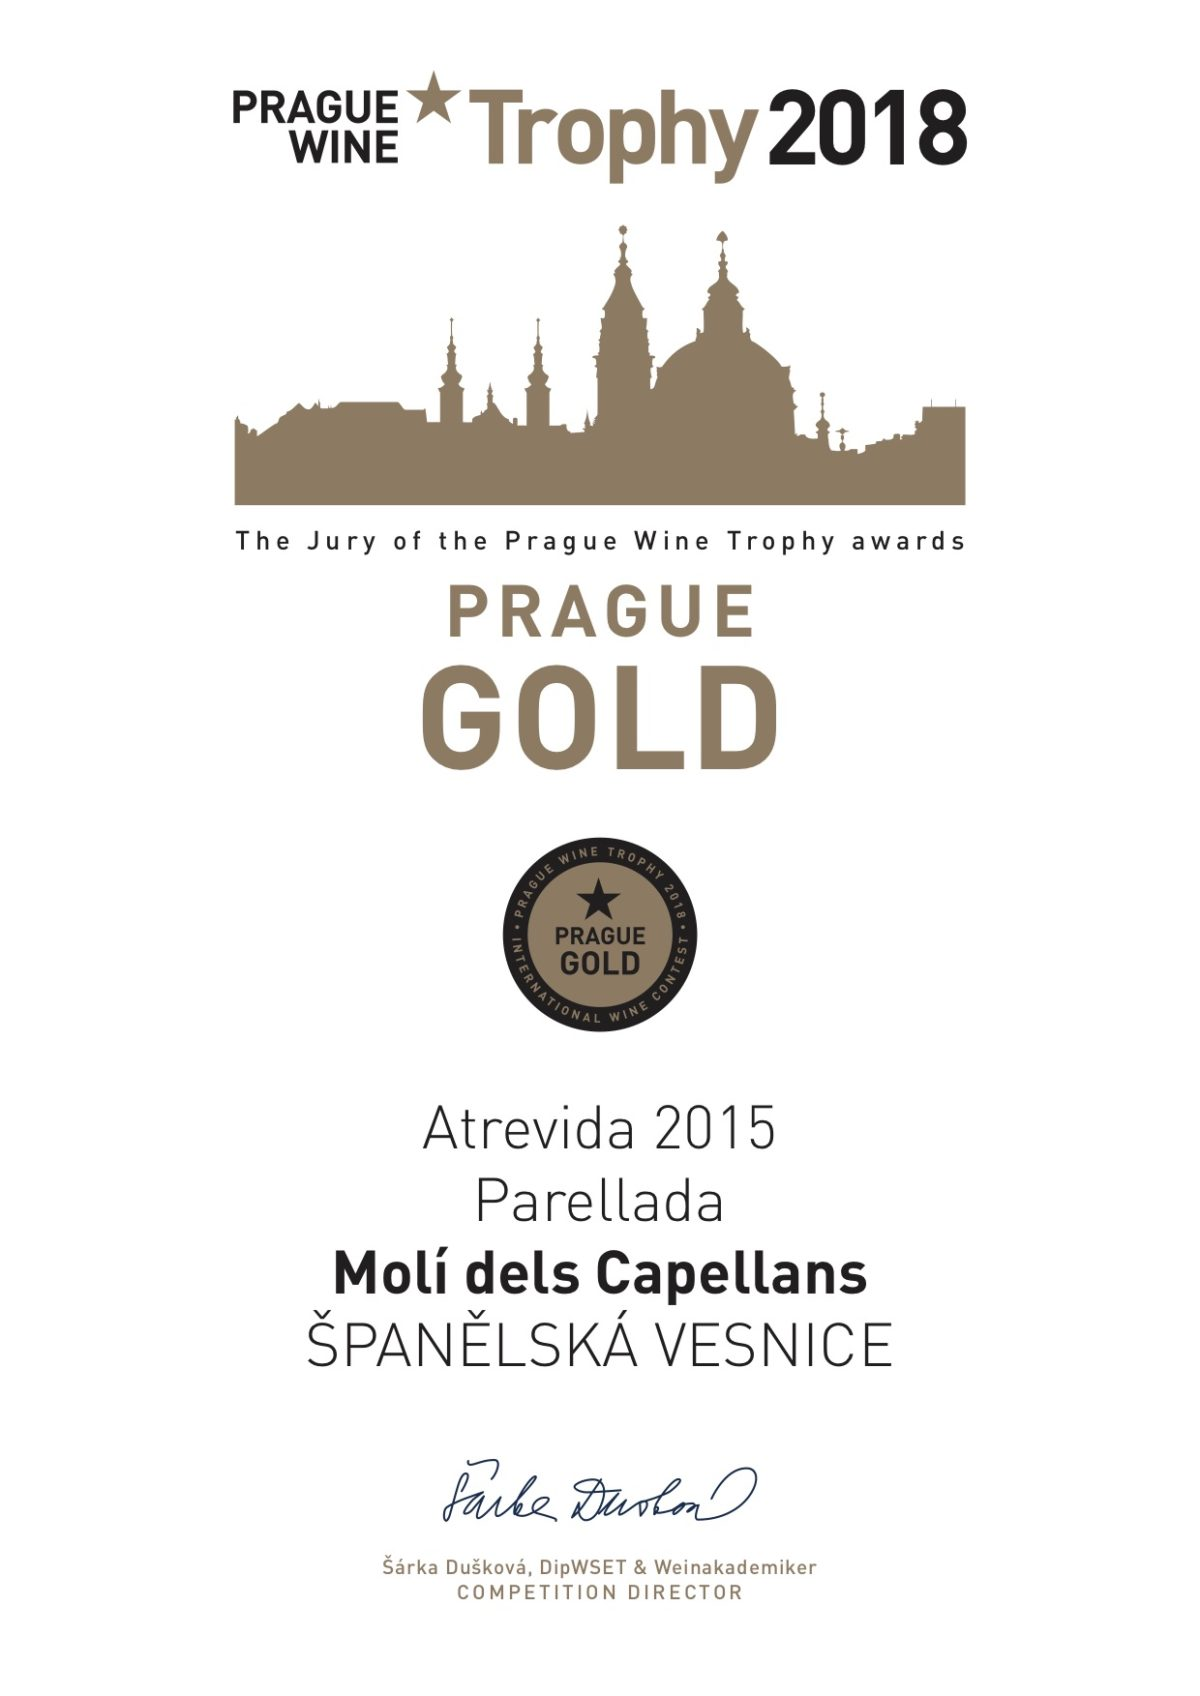 Atrevidan 2015 GOLD Prague Wine Trophy 2018